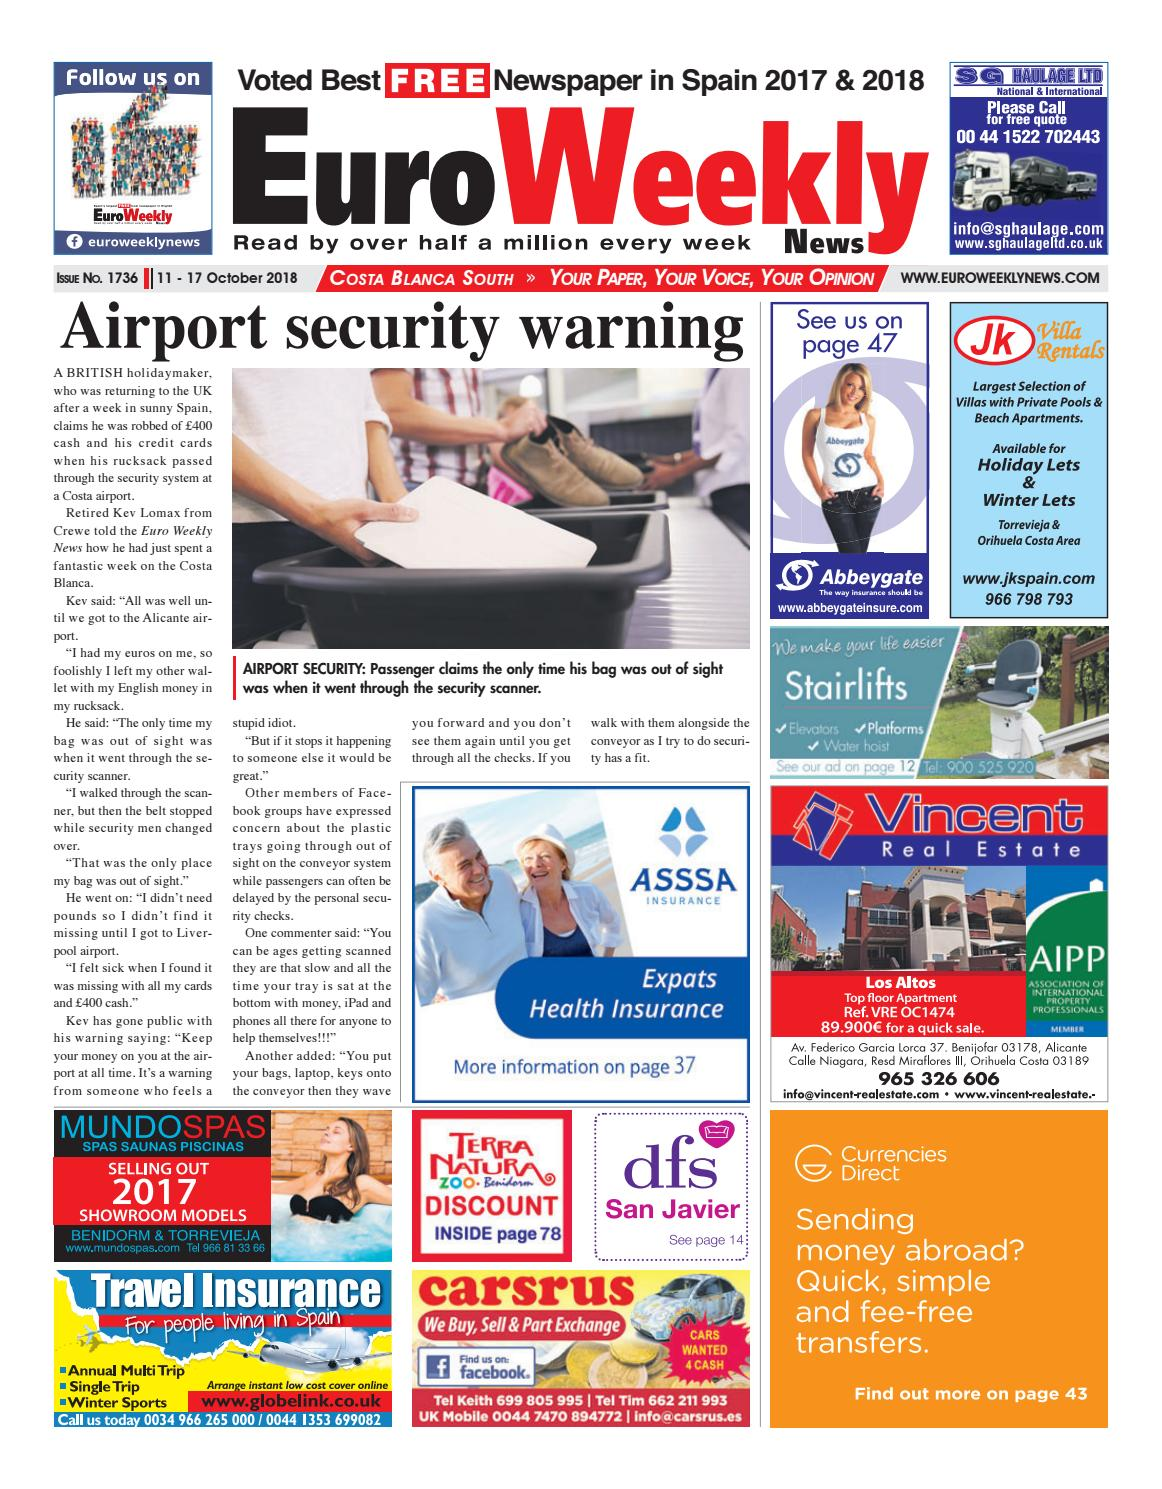 Costa Blanca South October 11 17 2018 Issue 1736 By Euro